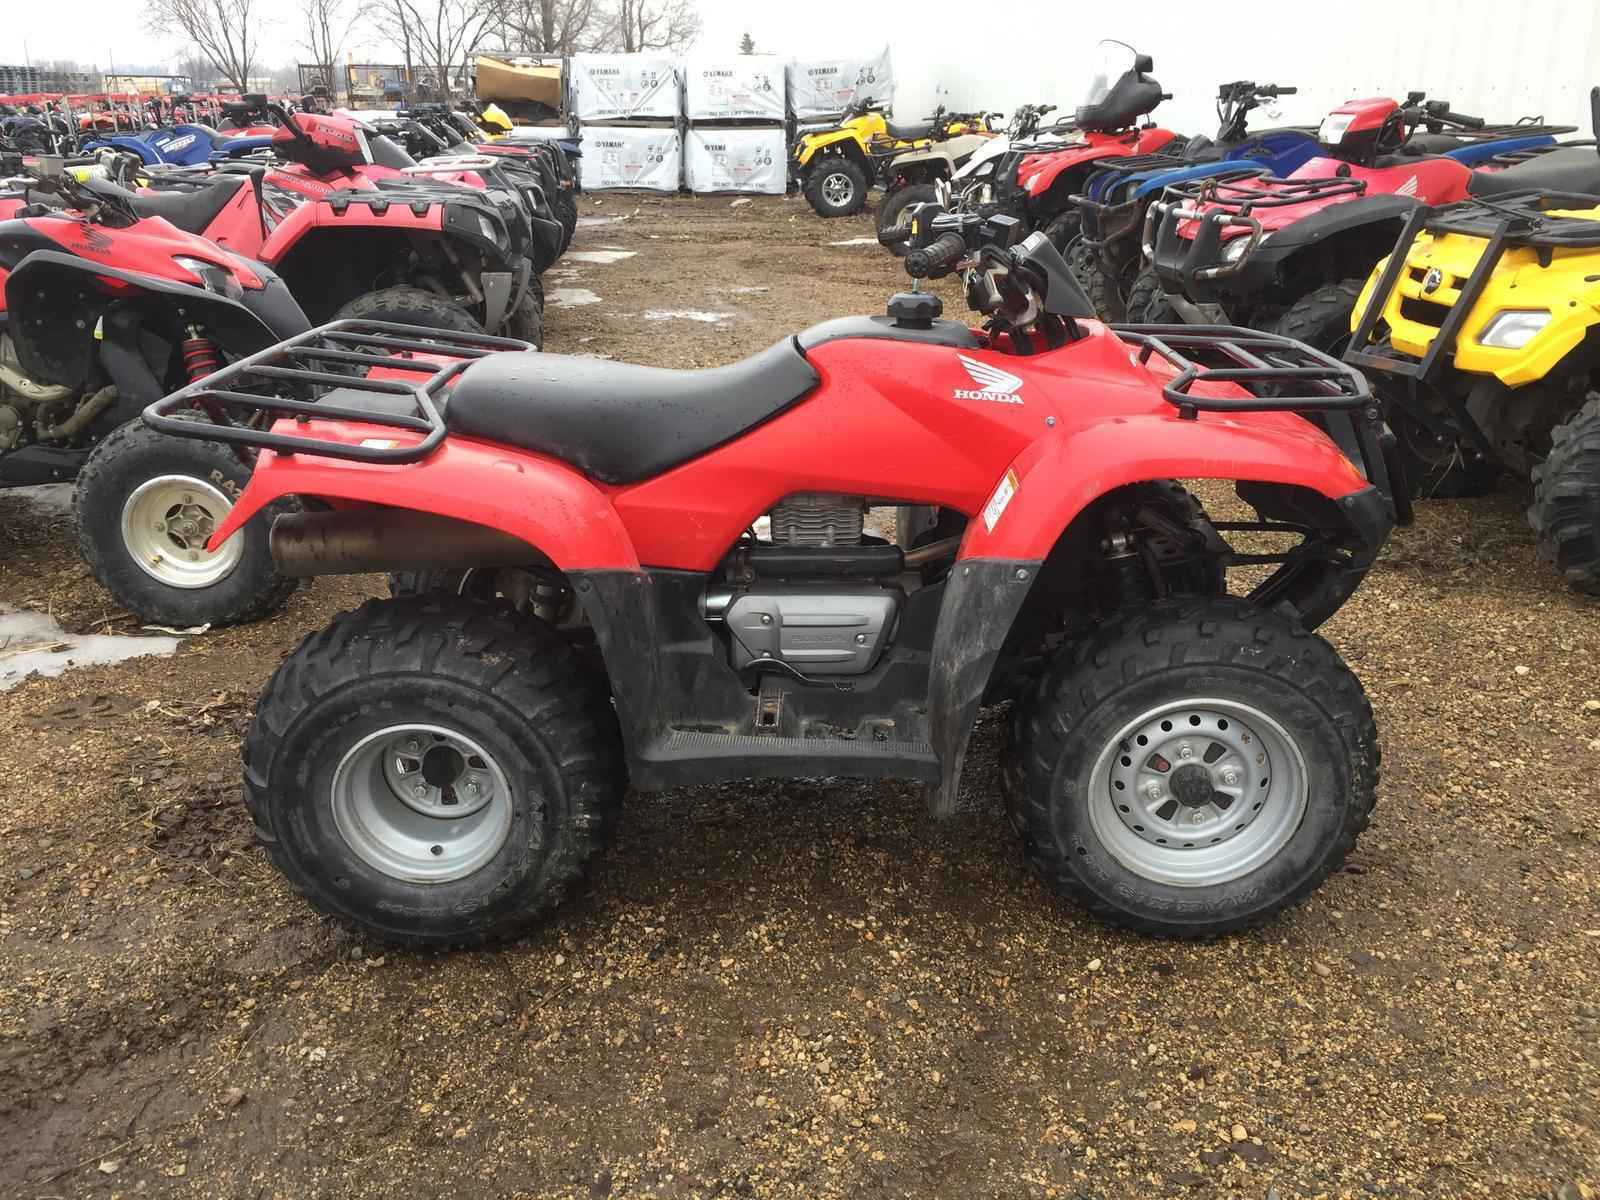 used 2013 honda recon 250 es atvs for sale in south dakota on atv trades. Black Bedroom Furniture Sets. Home Design Ideas